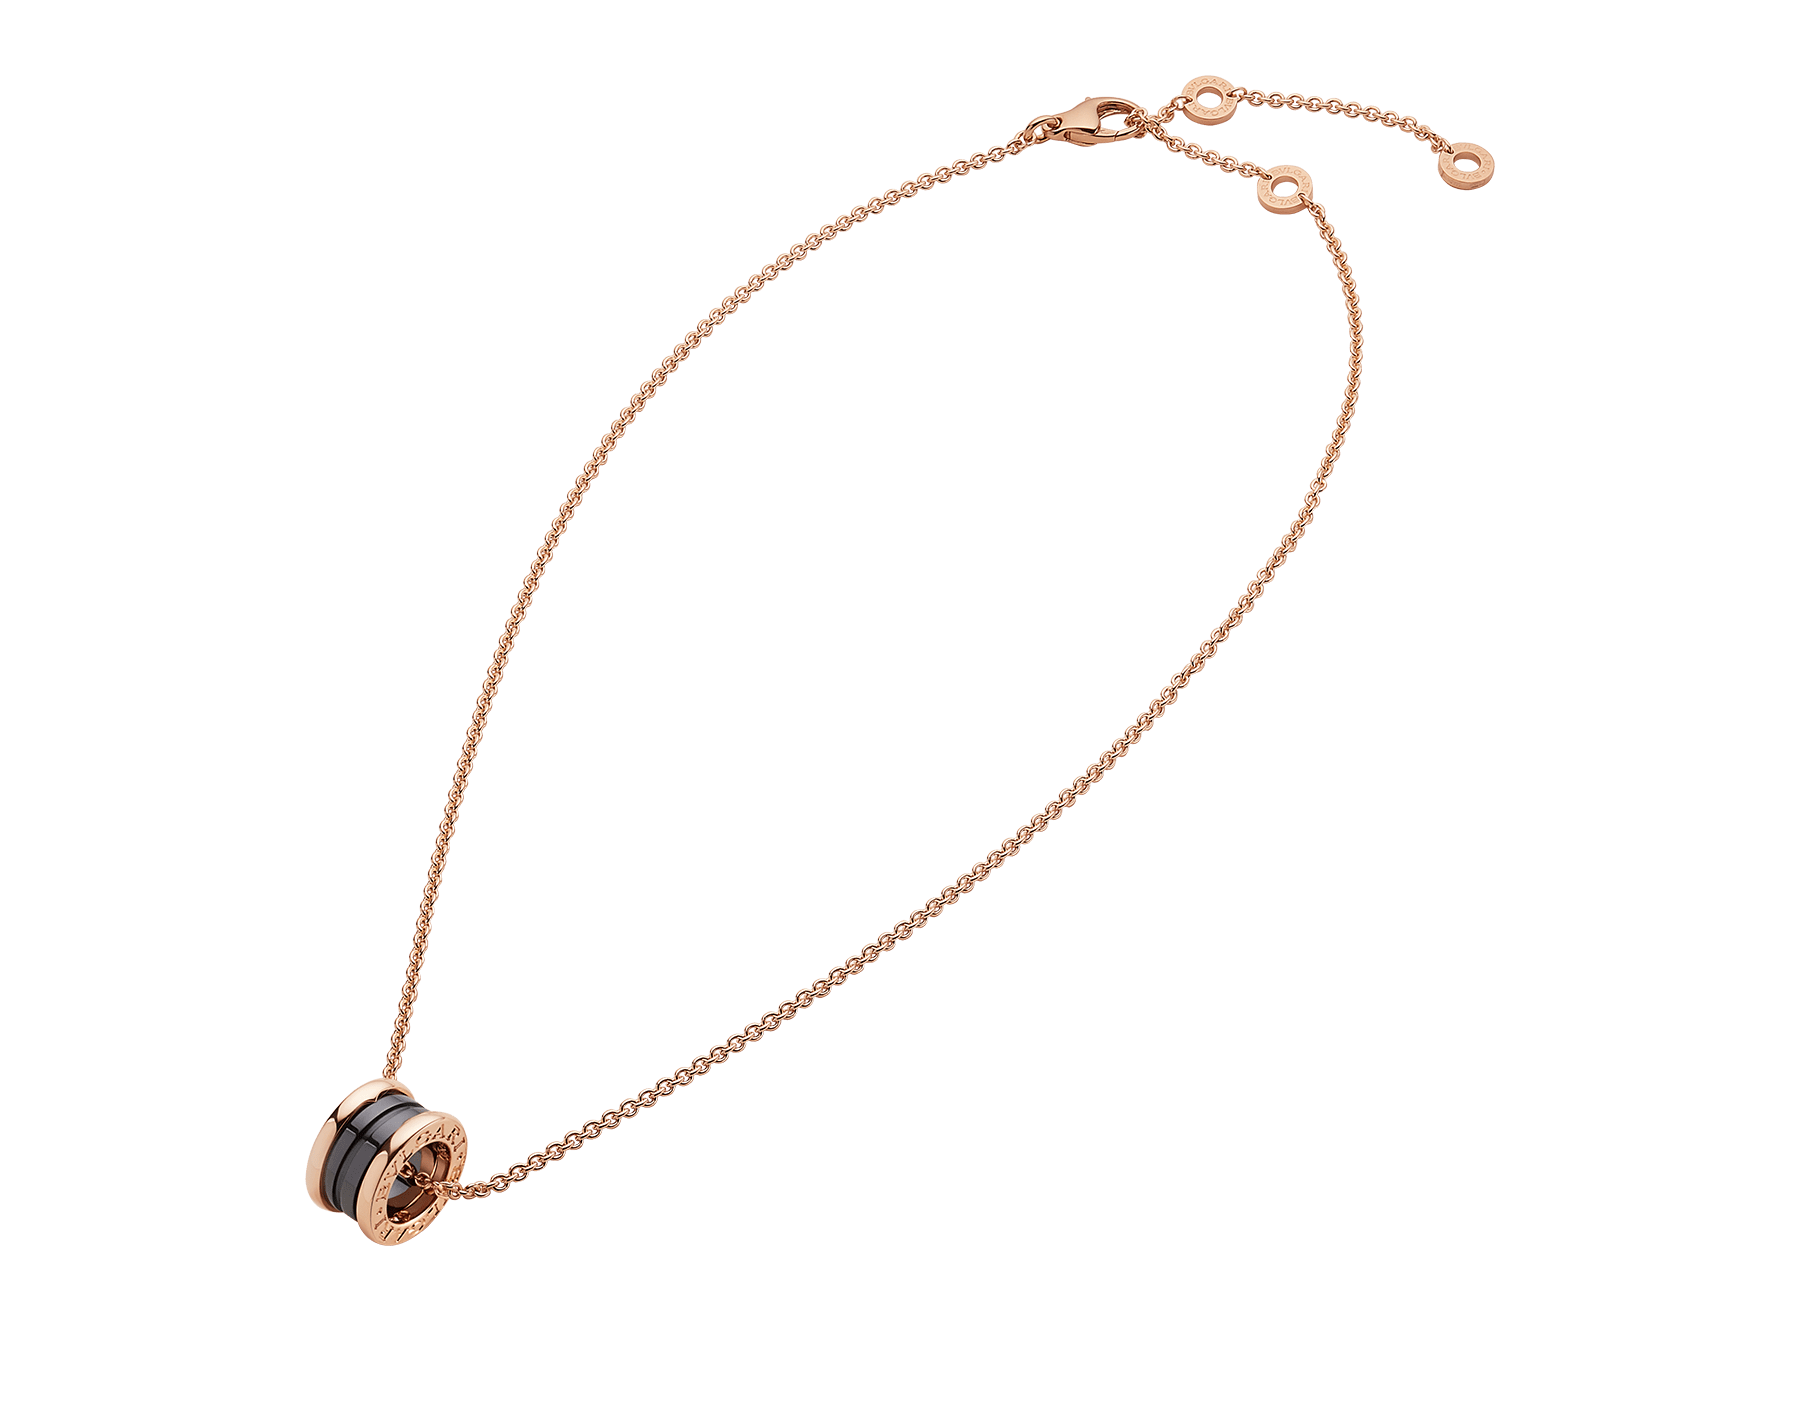 B.zero1 necklace with 18 kt rose gold chain and with 18 kt rose gold and black ceramic pendant. 346083 image 2